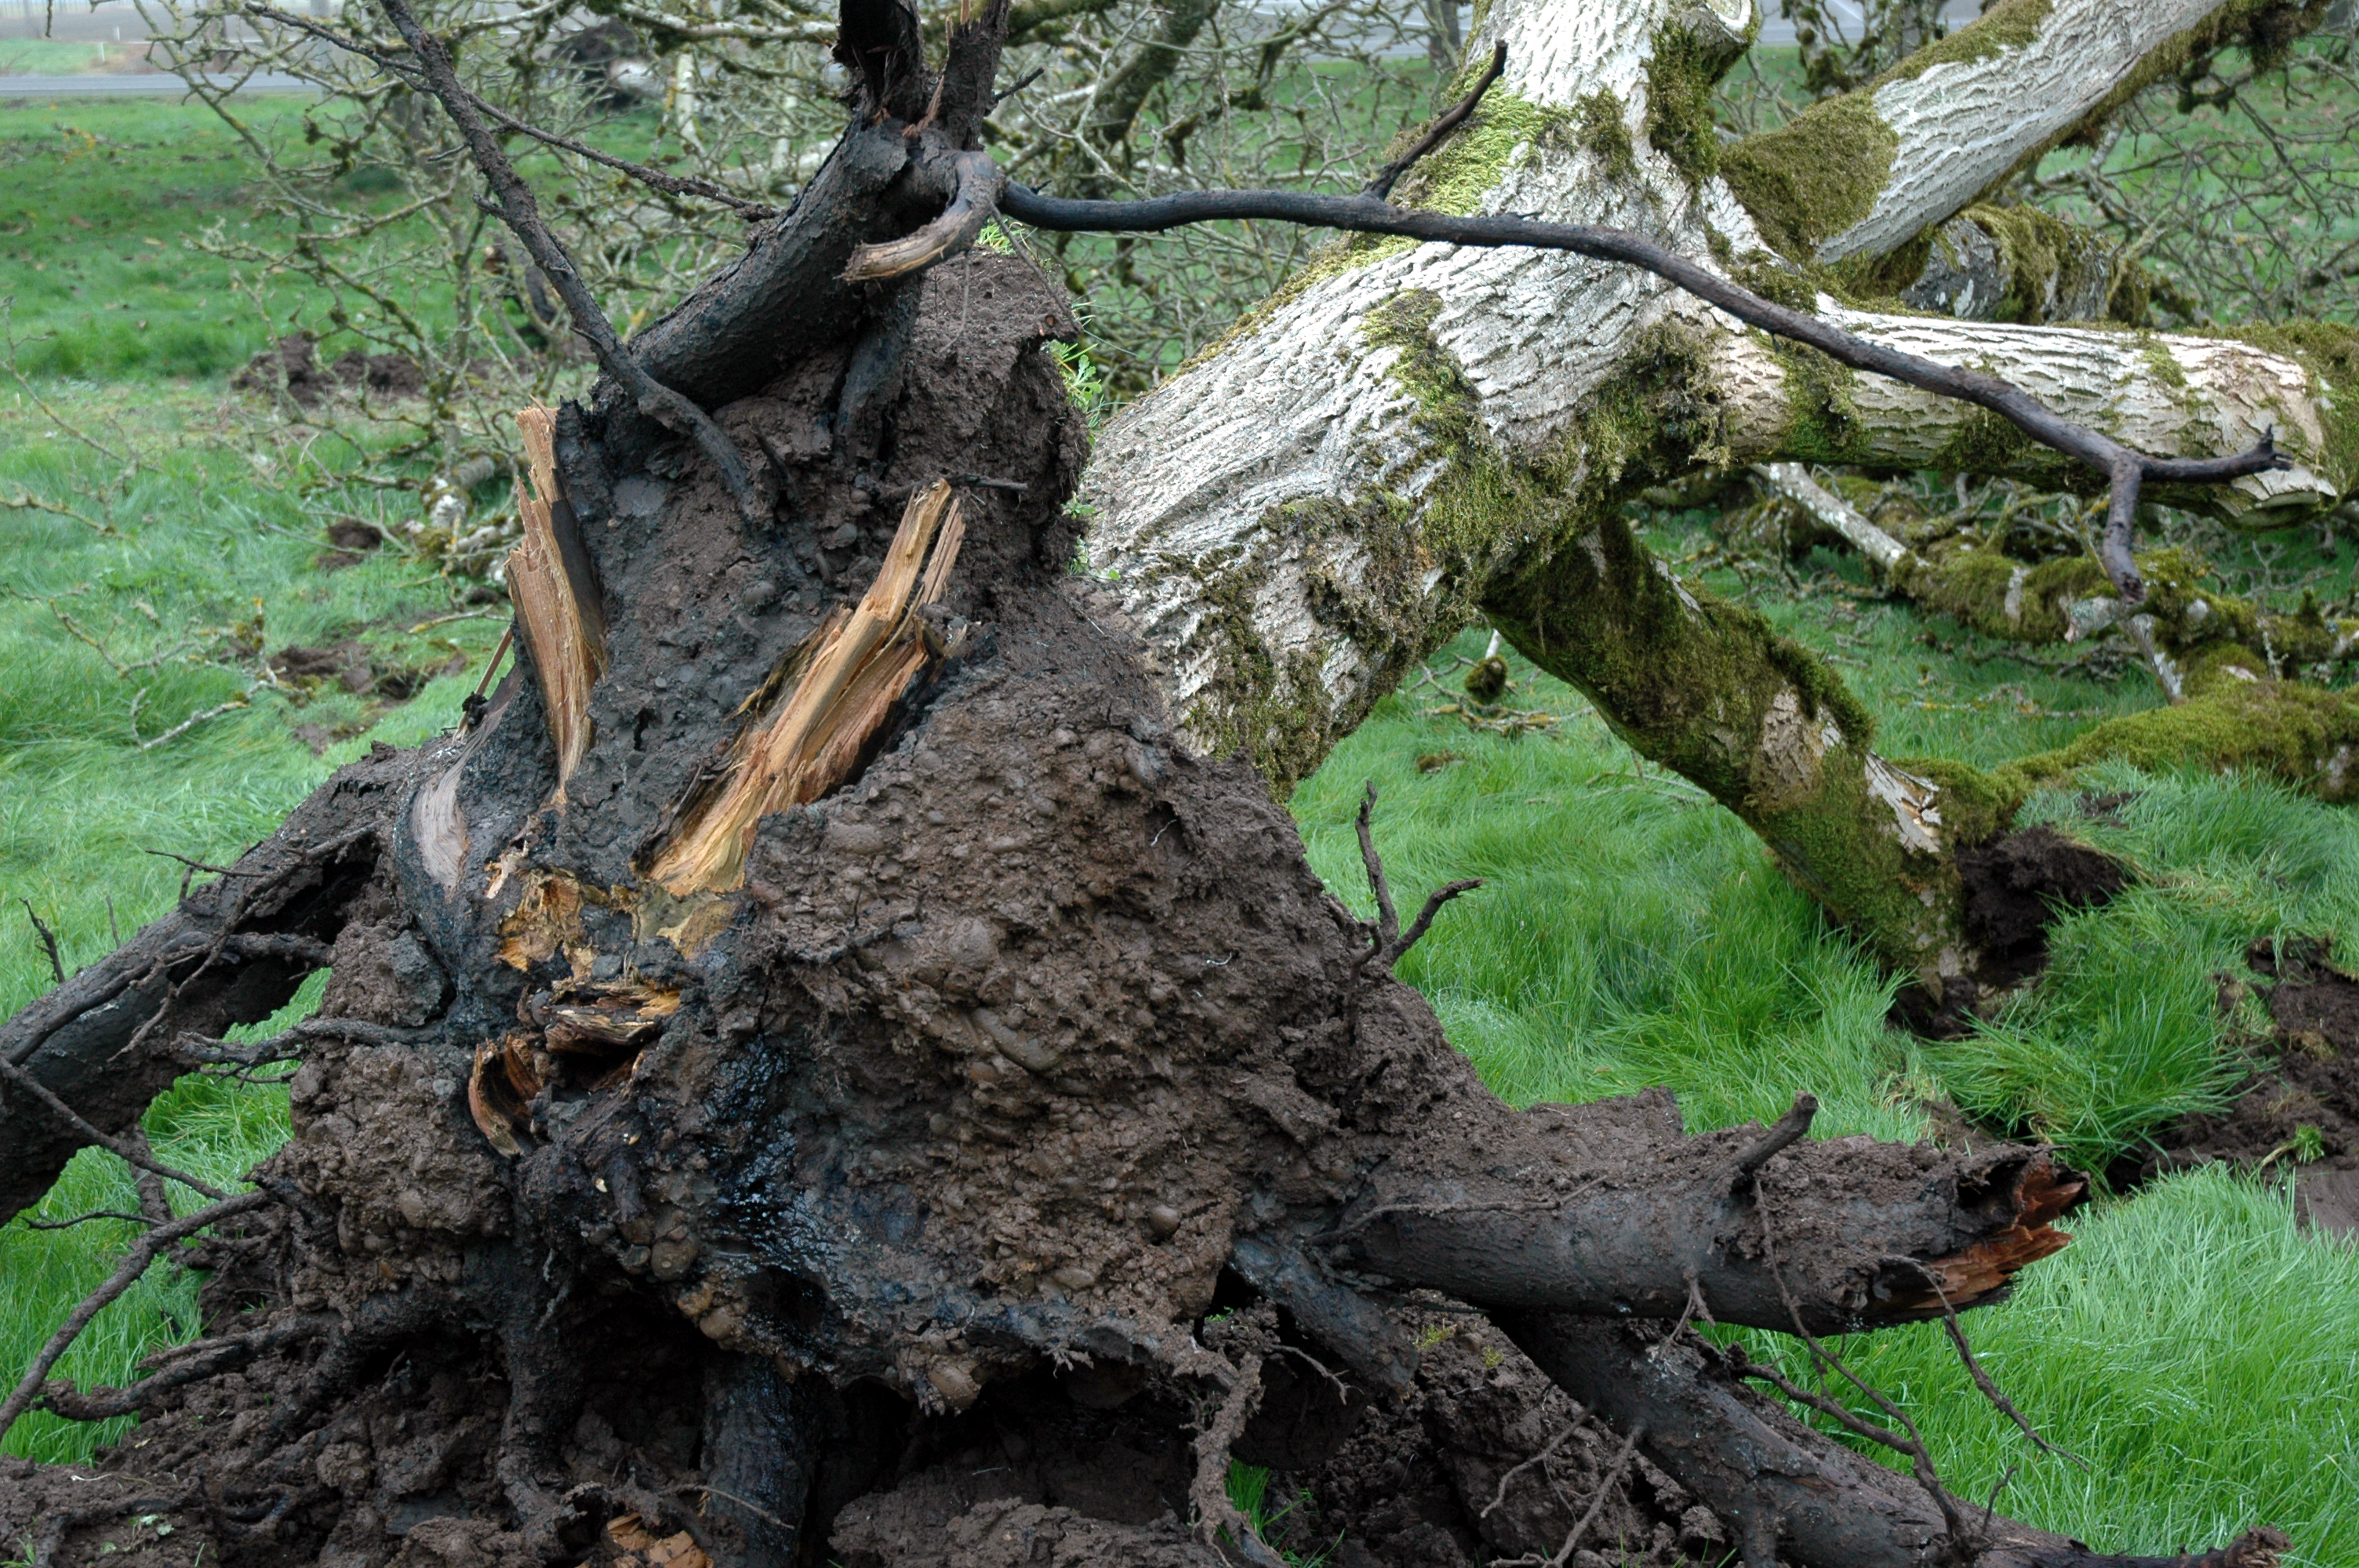 Image Related To Walnut Juglans Spp Phytophthora Root Rot